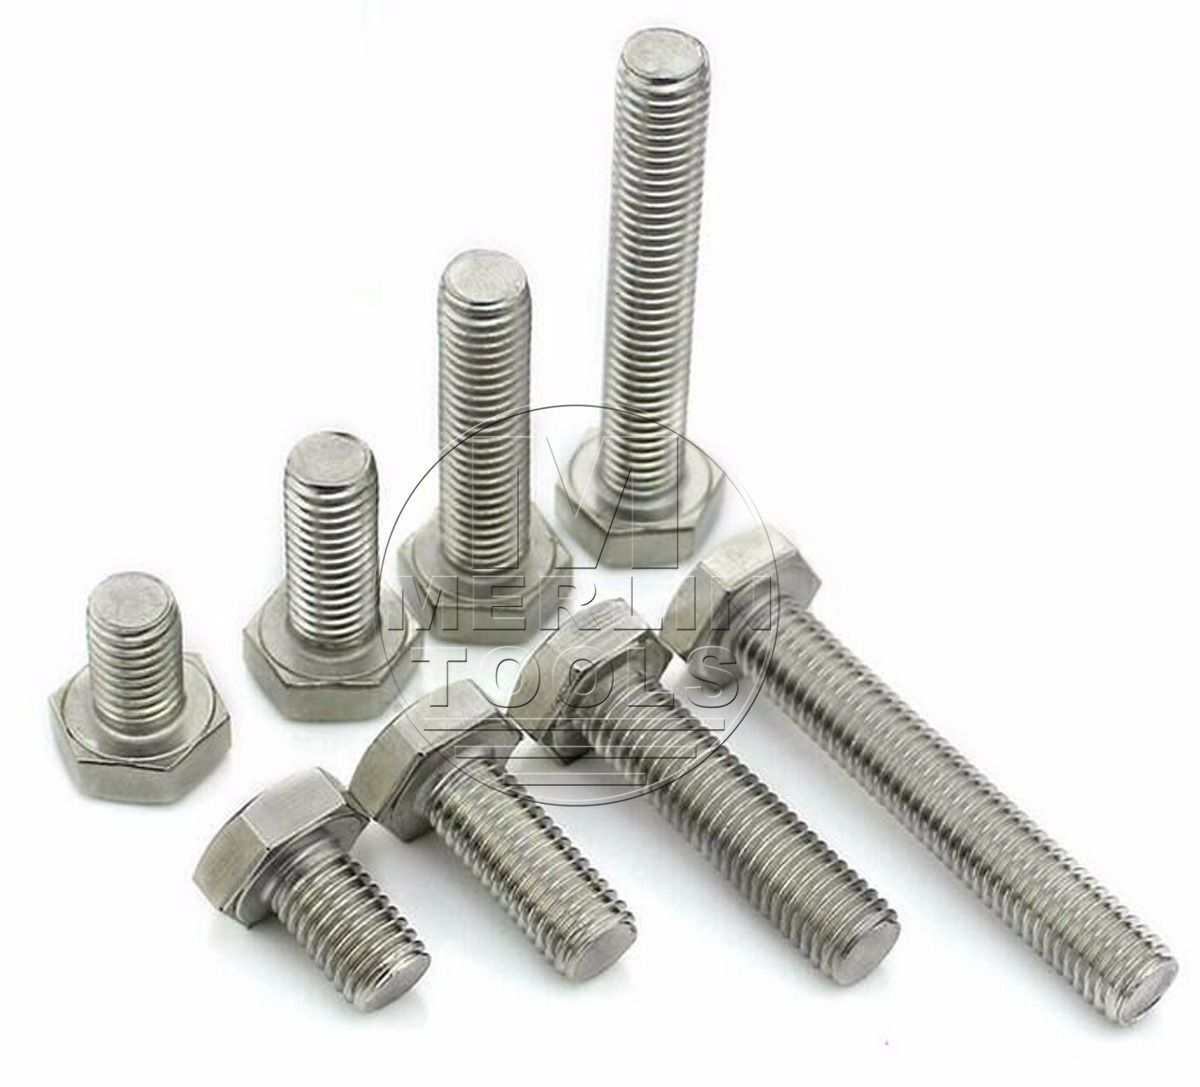 Select M12 M14 304 Stanless Steel Hex Head Cap Screws Bolts and Fine  Threaded